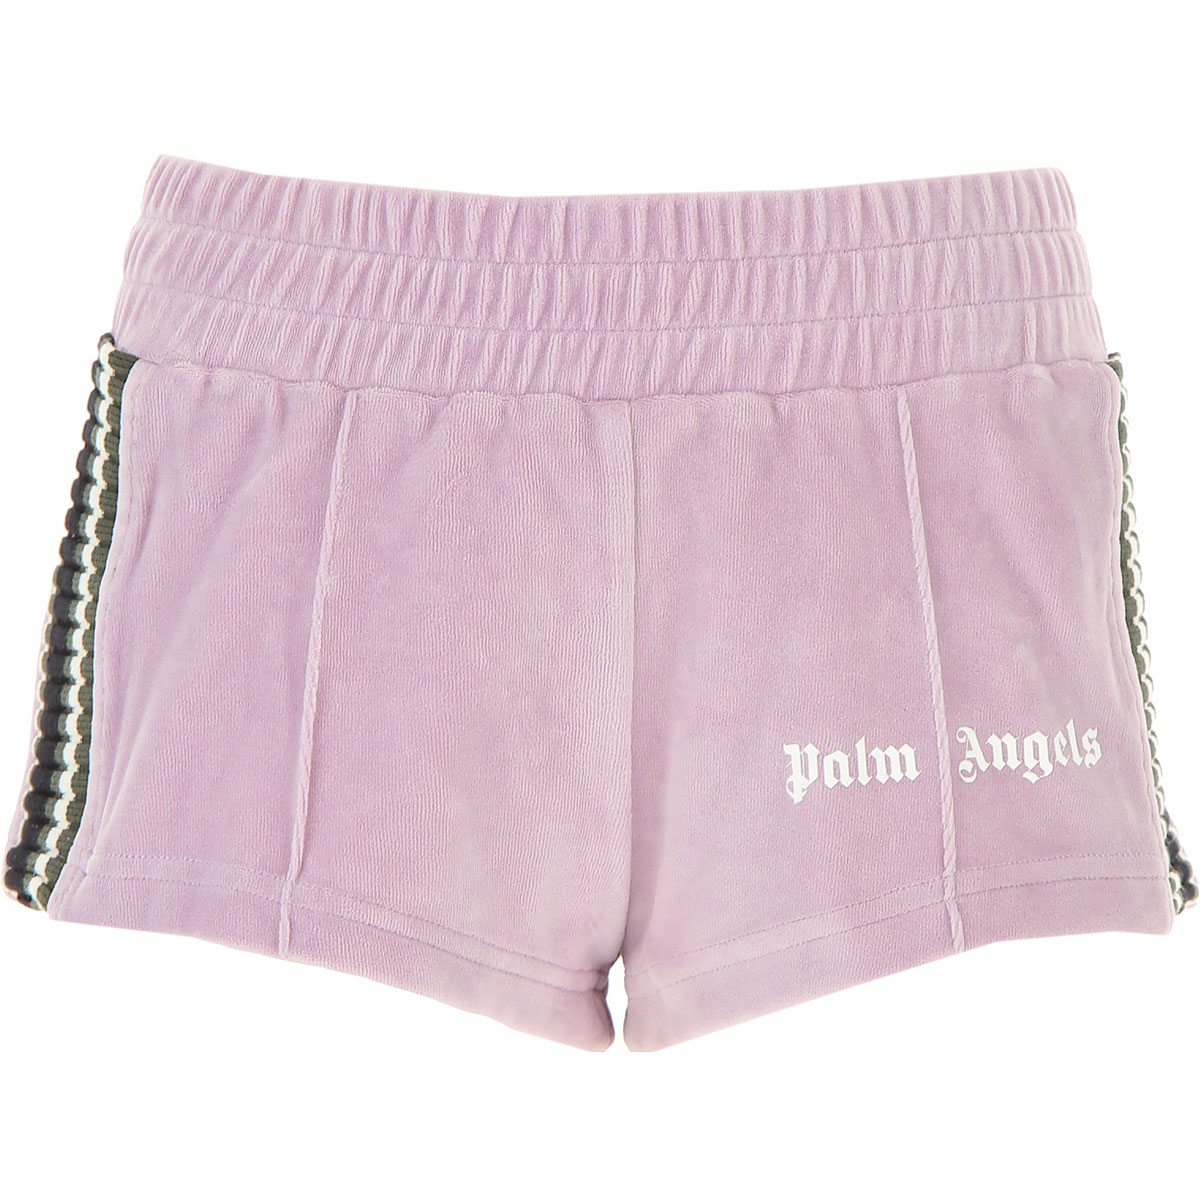 Palm Angels Shorts for Women On Sale, Lilac, Cotton, 2019, 26 4